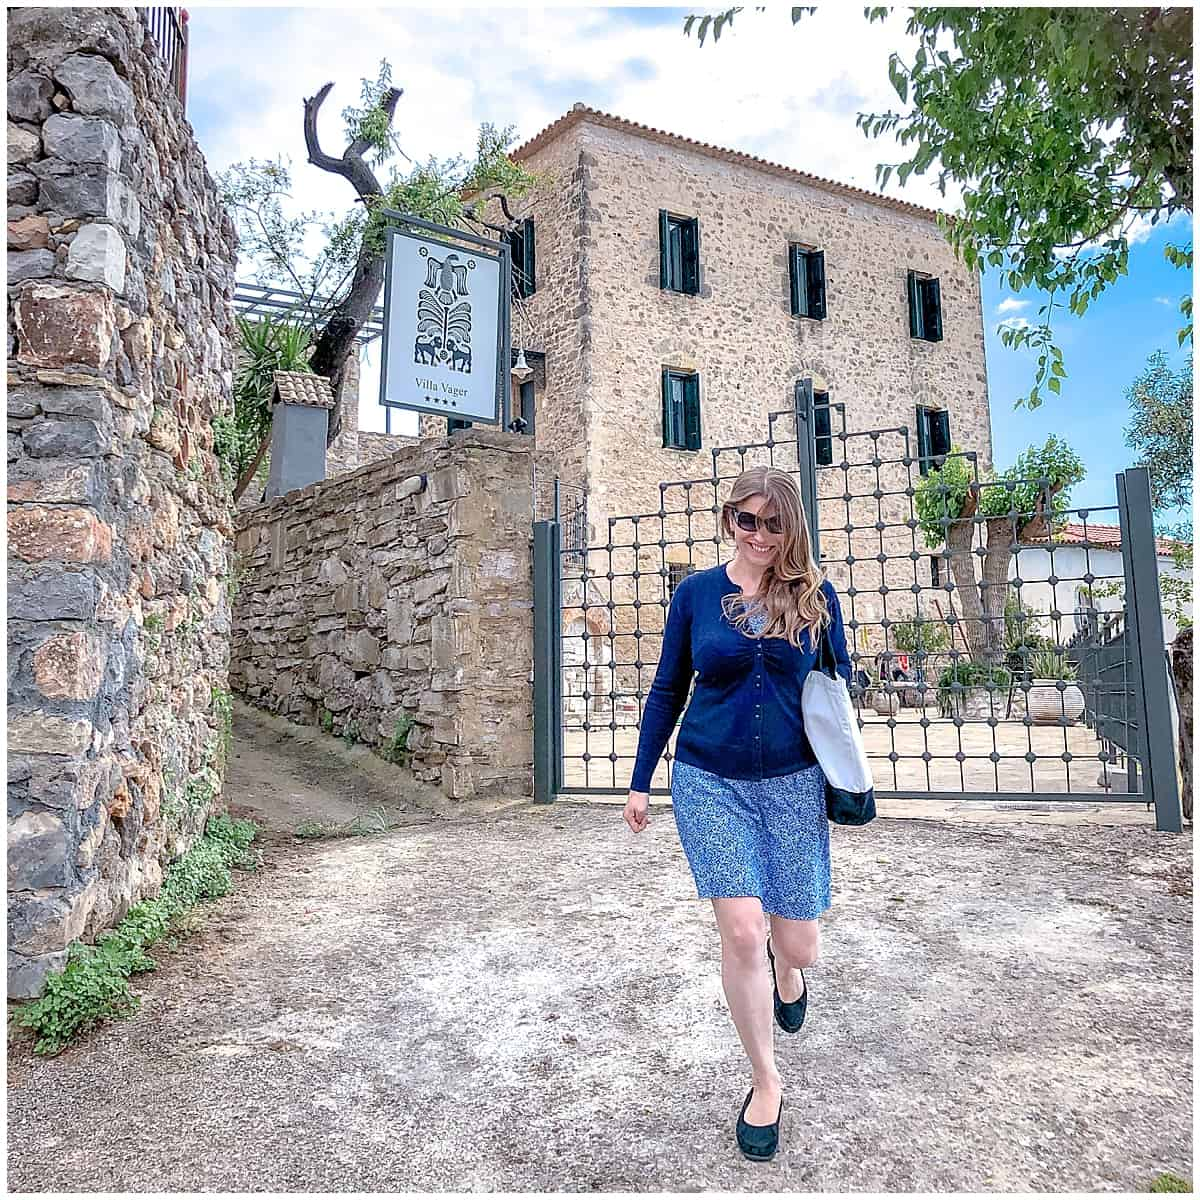 Abigail King striding away from Villa Vager Mani in the Peloponnese Greece